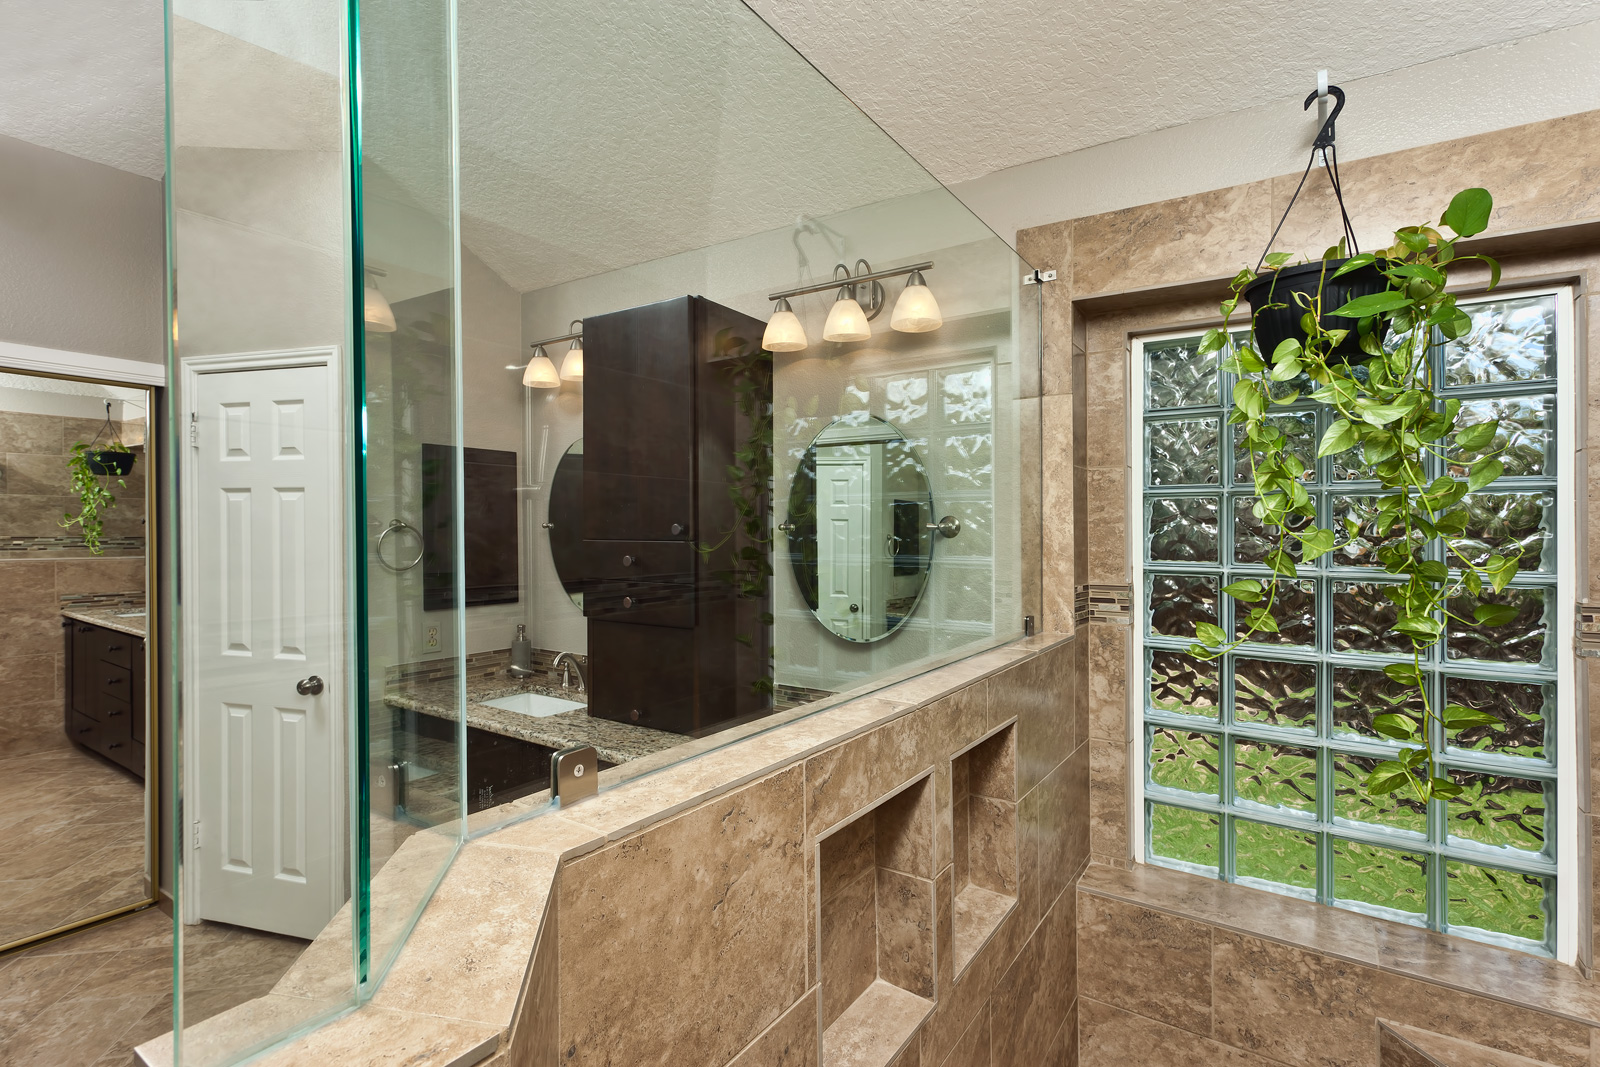 home remodel san antonio, tx | bathroom & kitchen remodeling